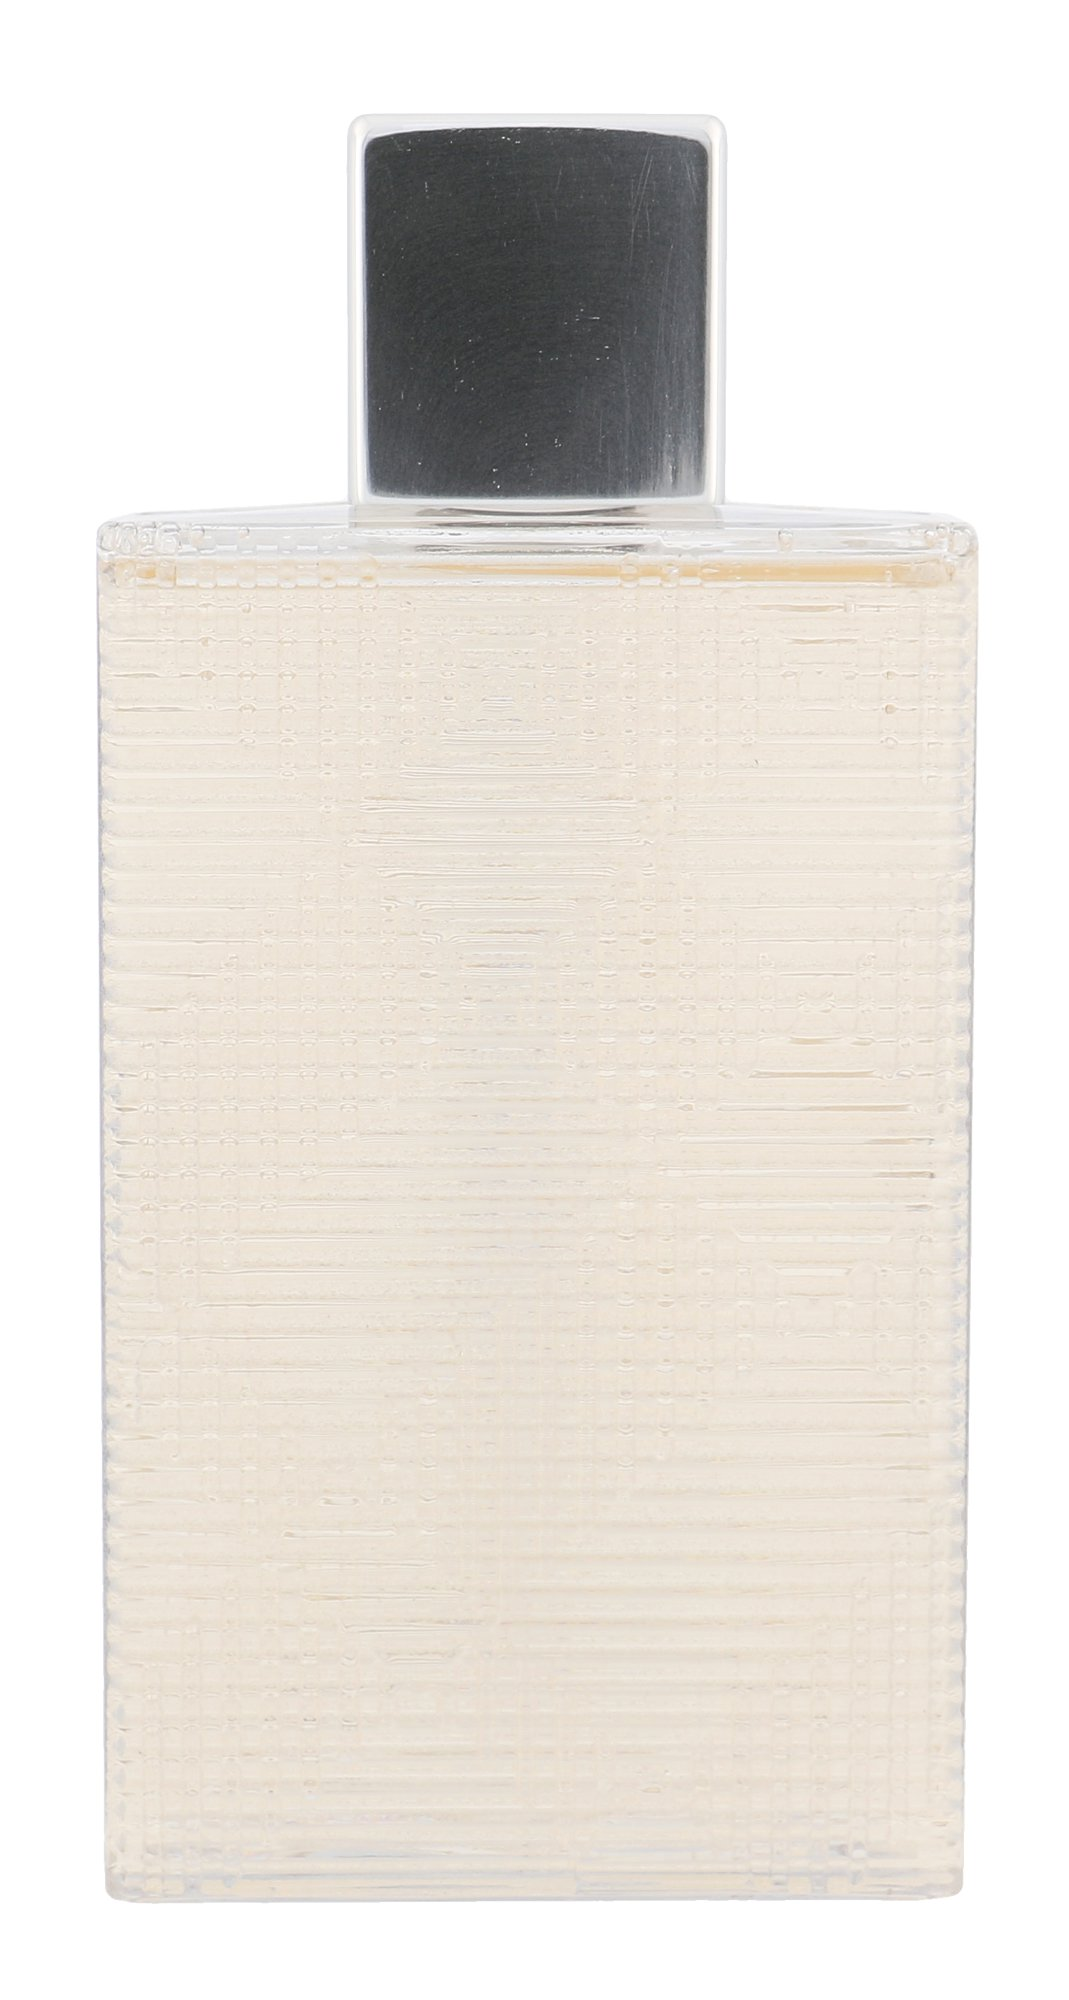 Burberry Brit for Her Rhythm, tusfürdő gél 150ml - For Her